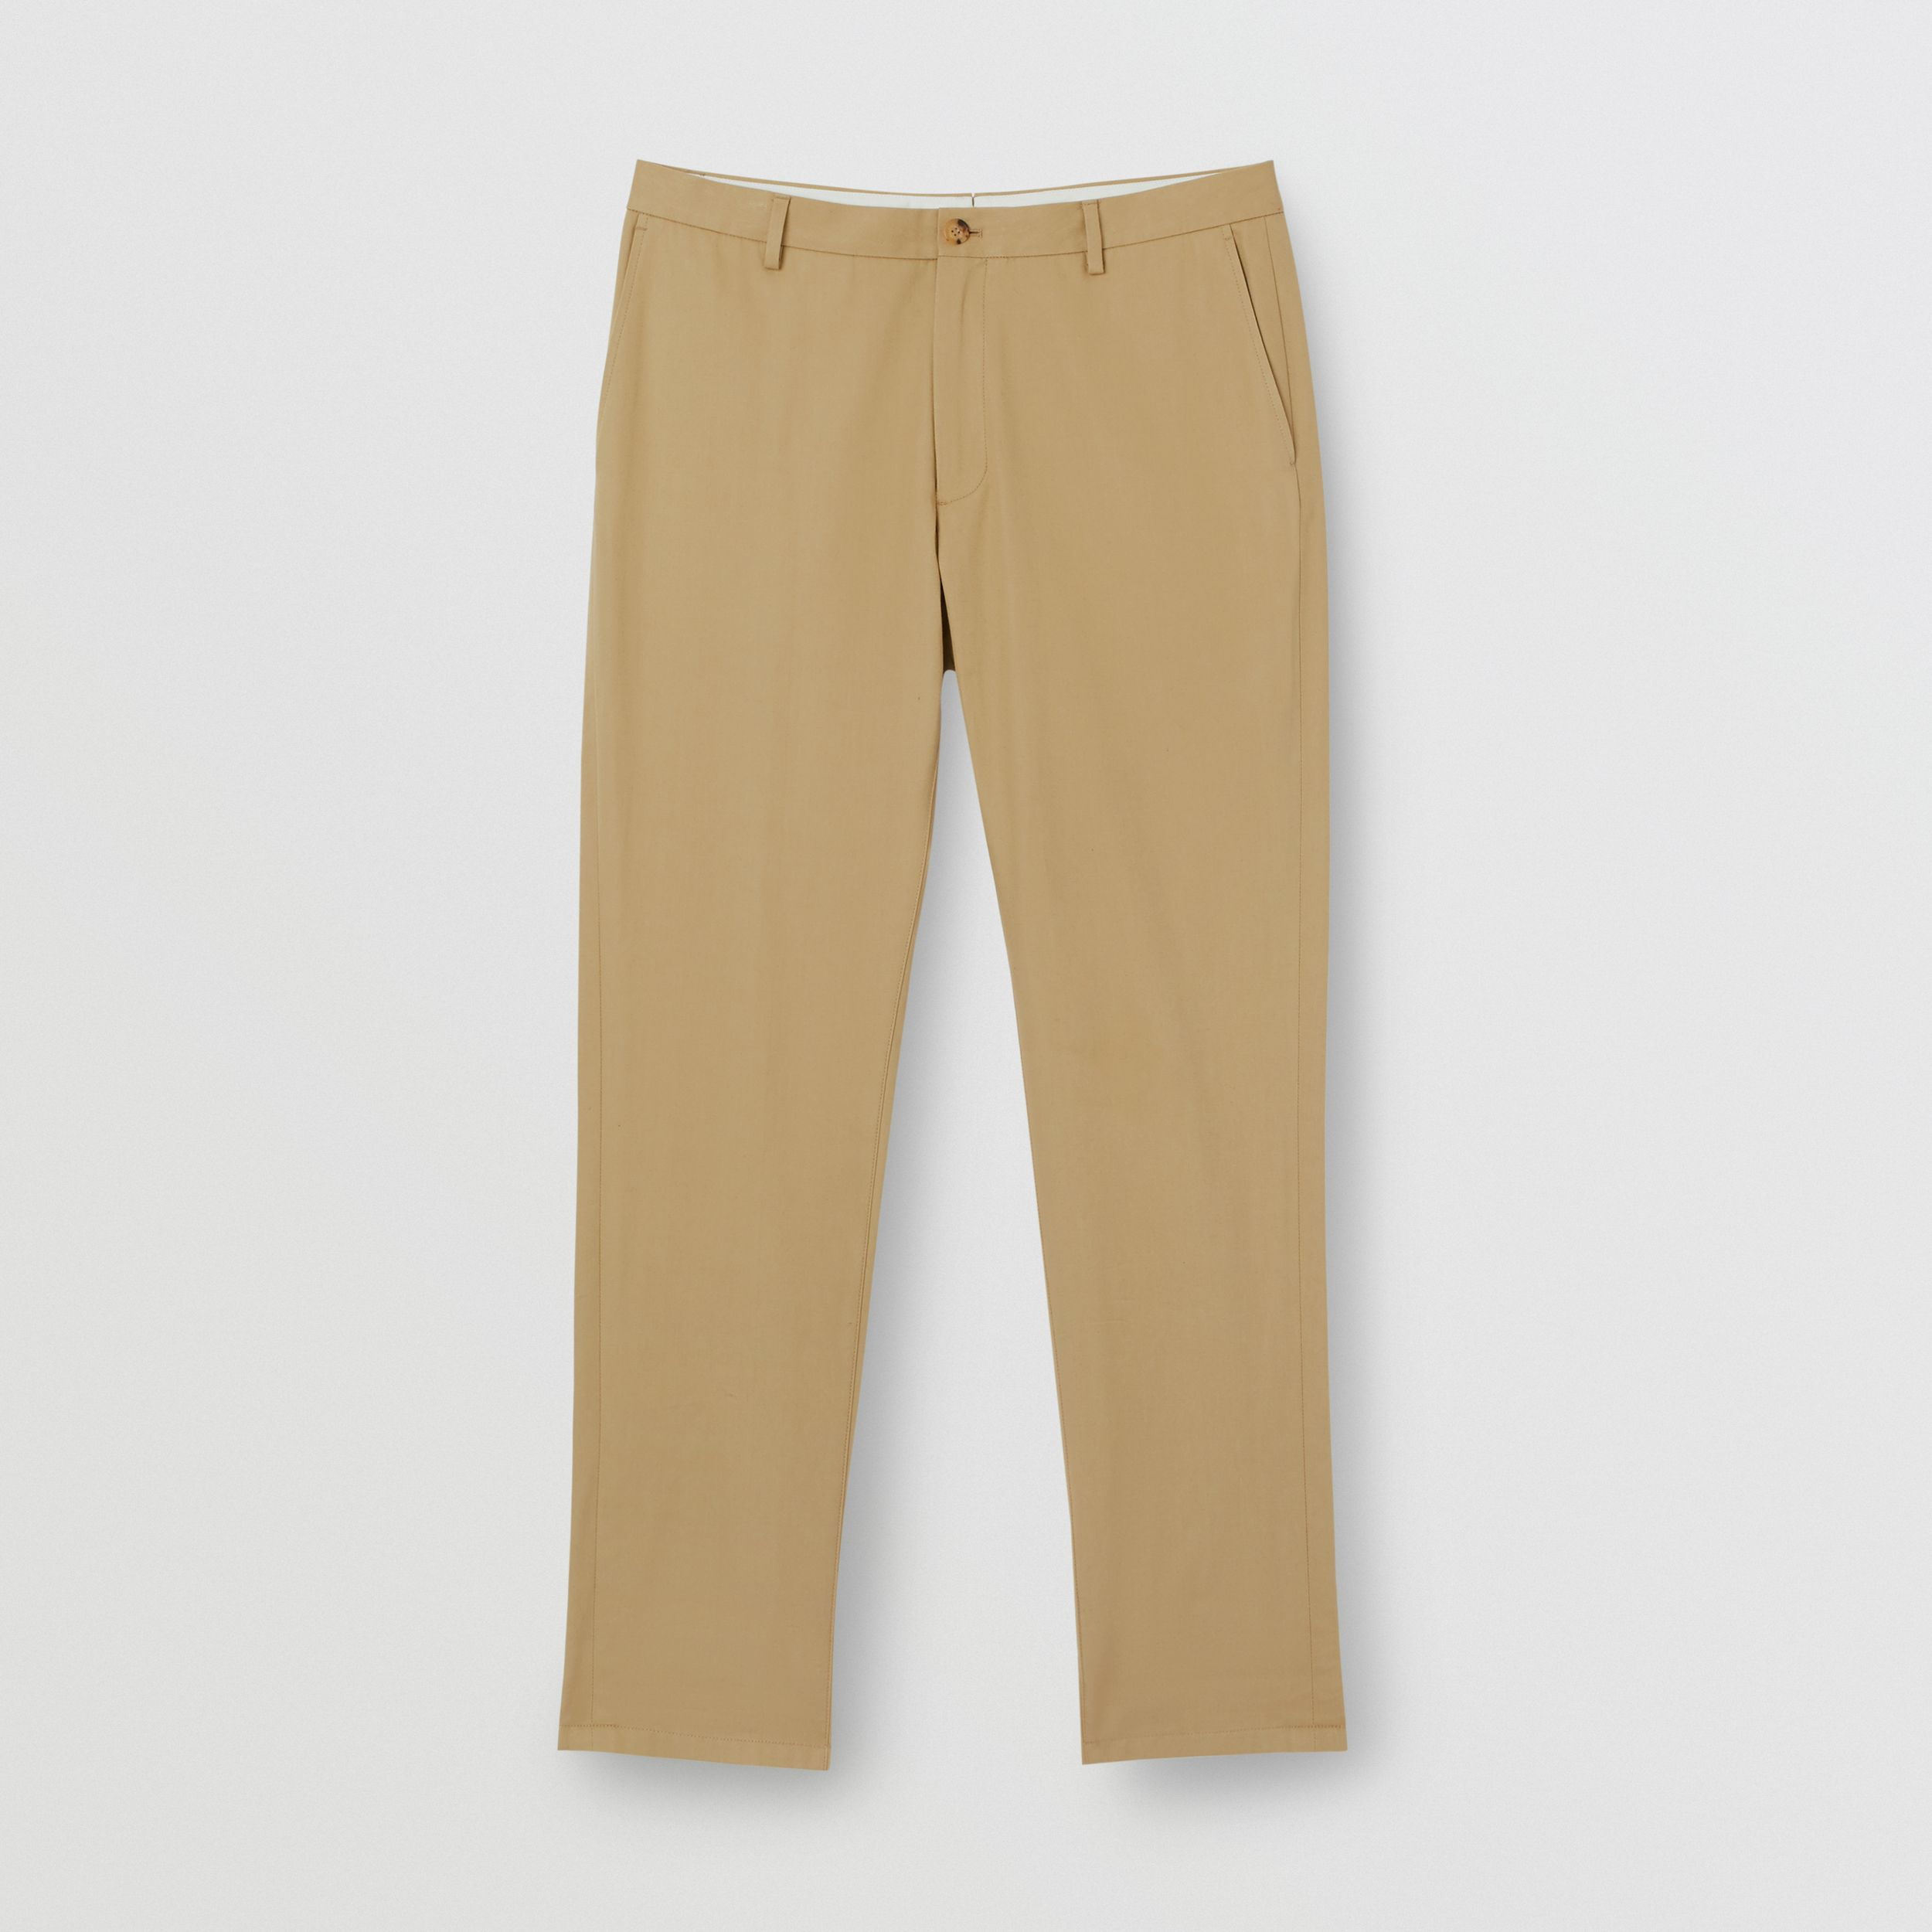 Slim Fit Cotton Chinos in Honey - Men | Burberry - 4